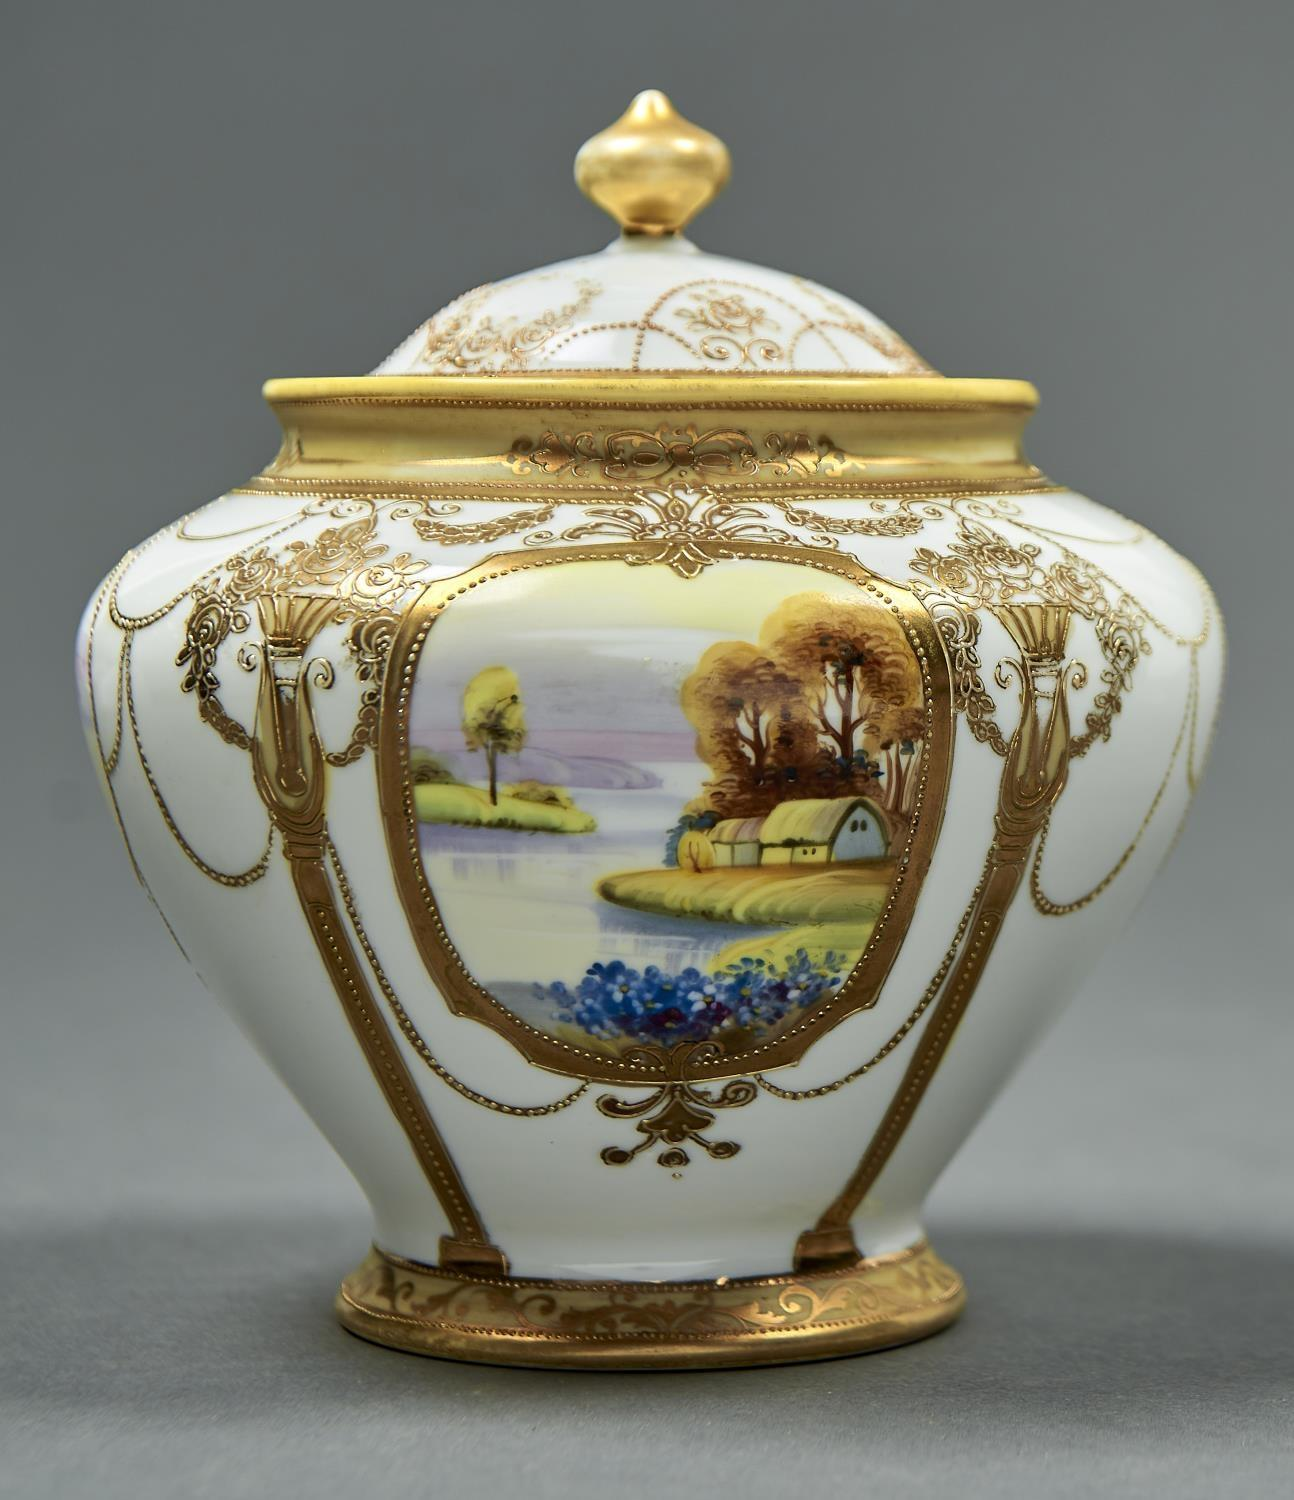 A NORITAKE VASE AND COVER, EARLY 20TH C, THE VASE PAINTED WITH FOUR RURAL LANDSCAPE MEDALLIONS